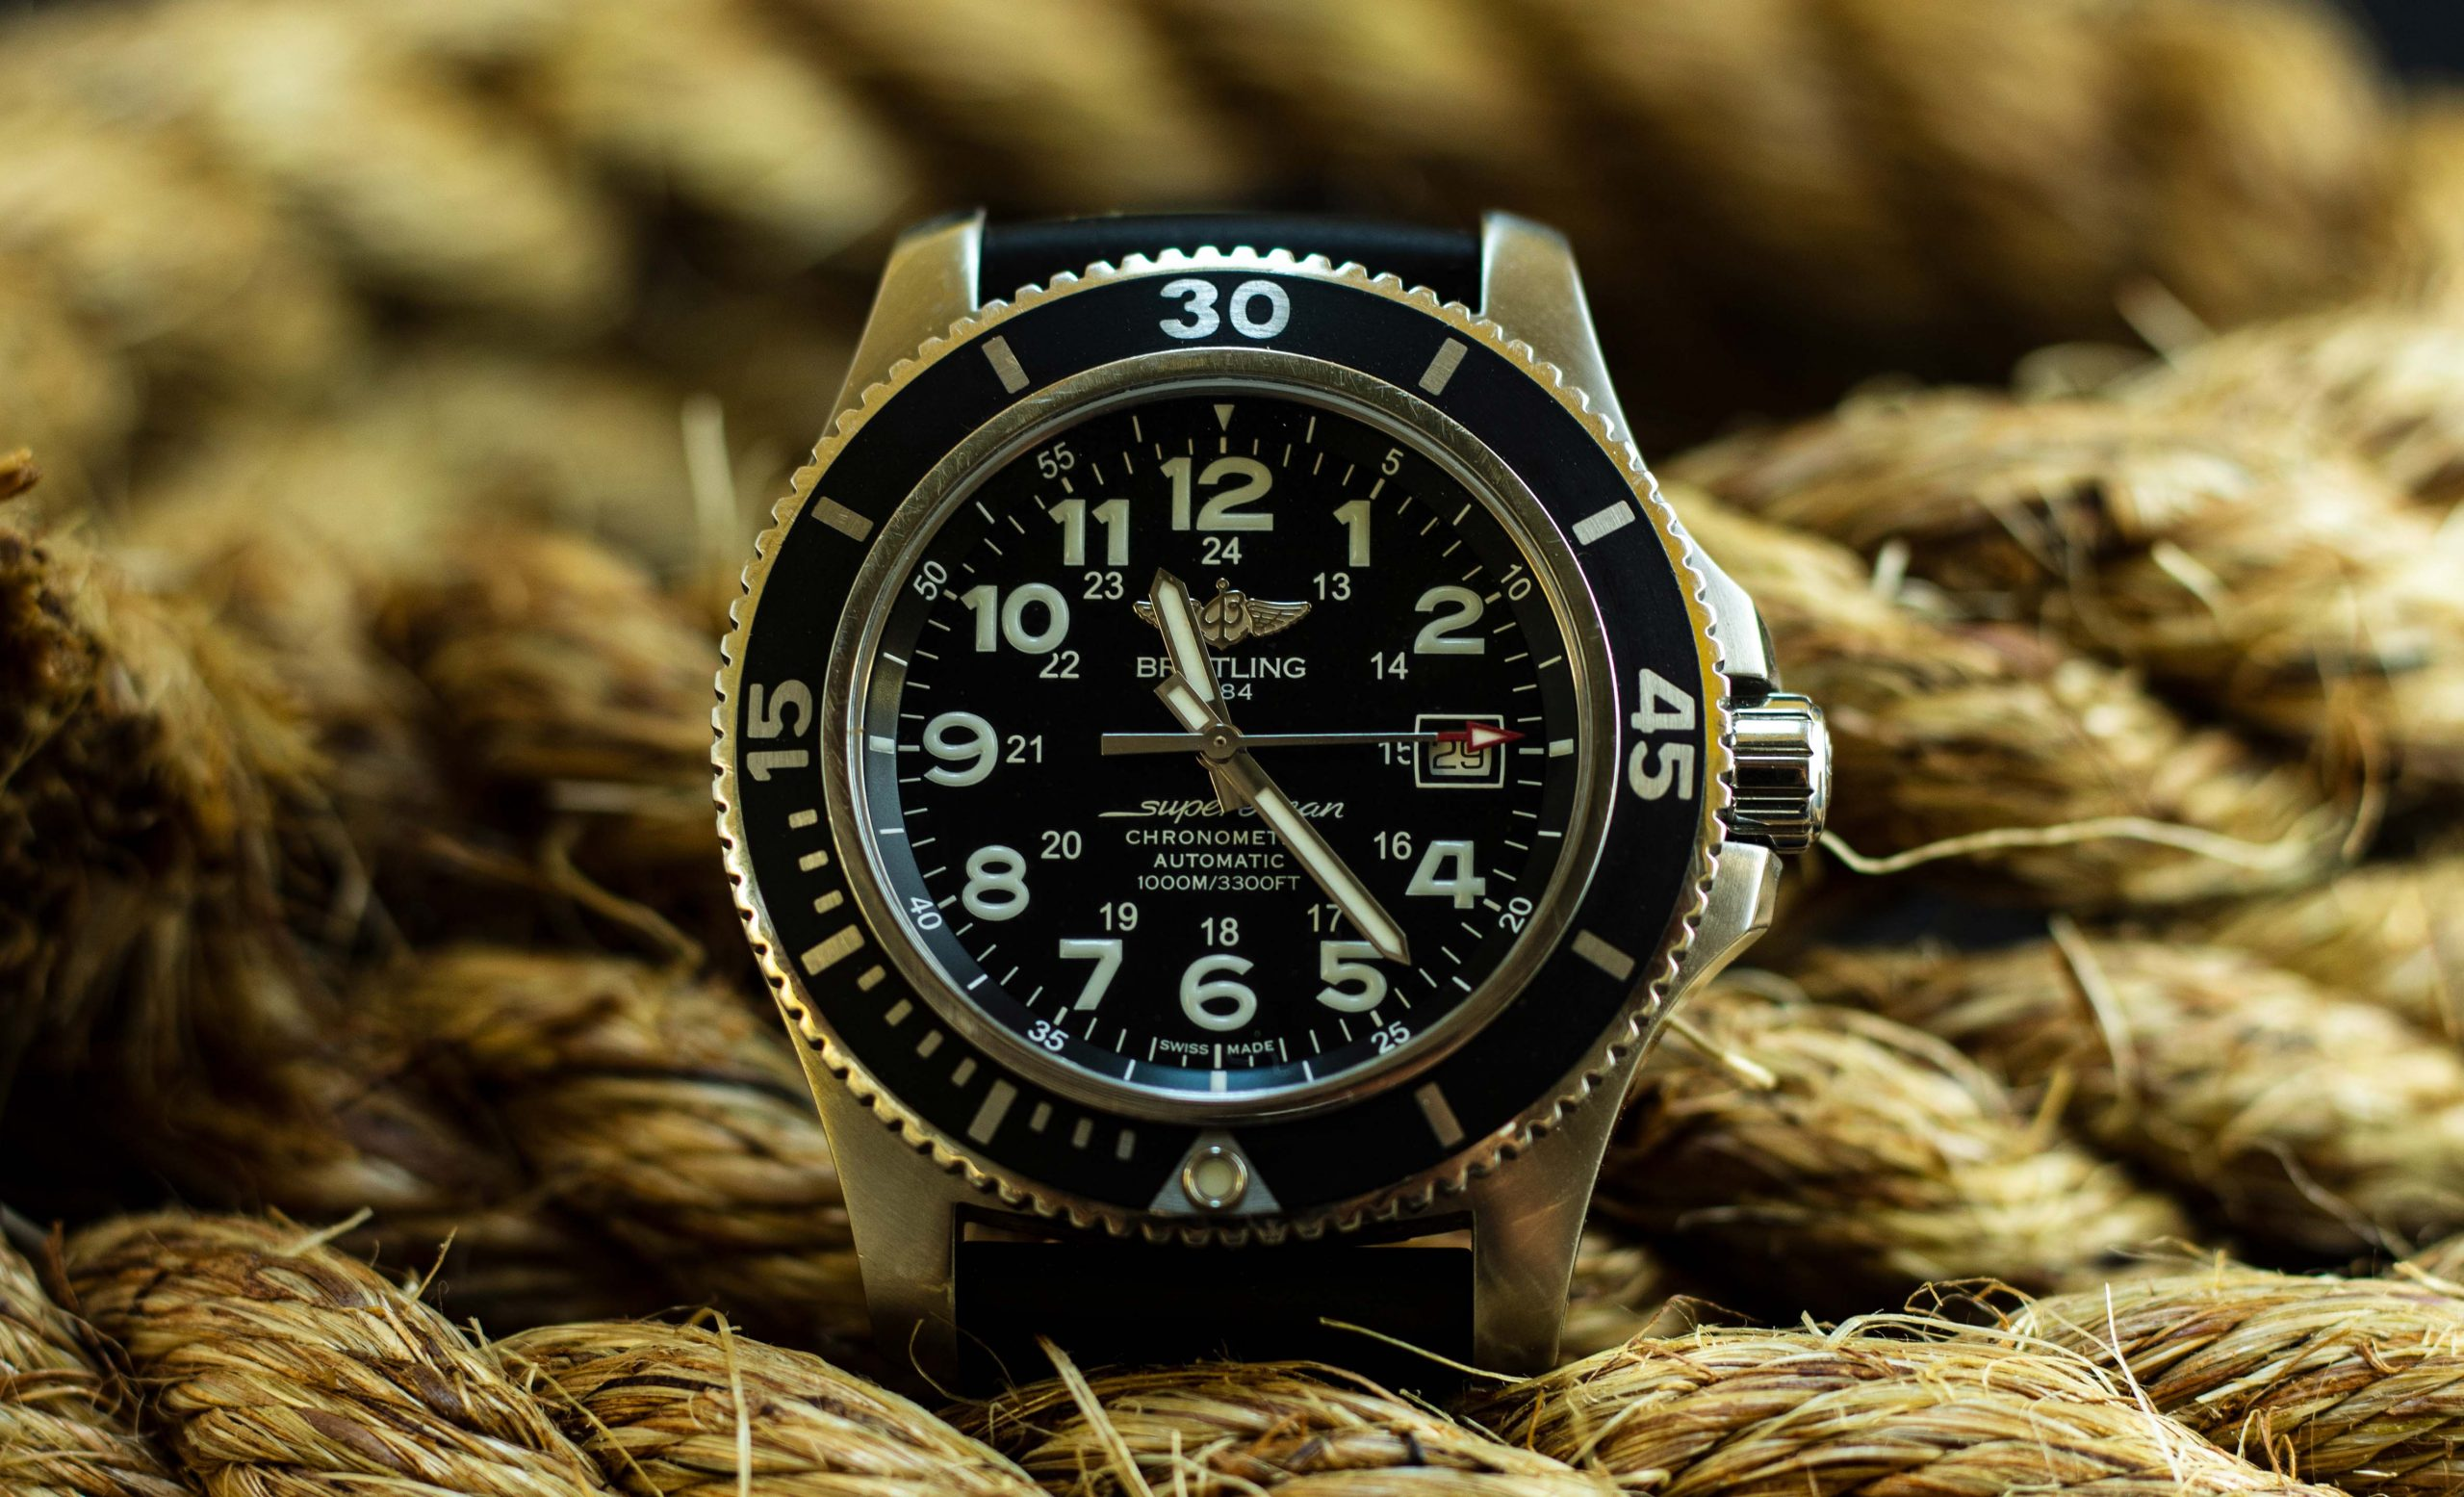 breitling watch between ropes